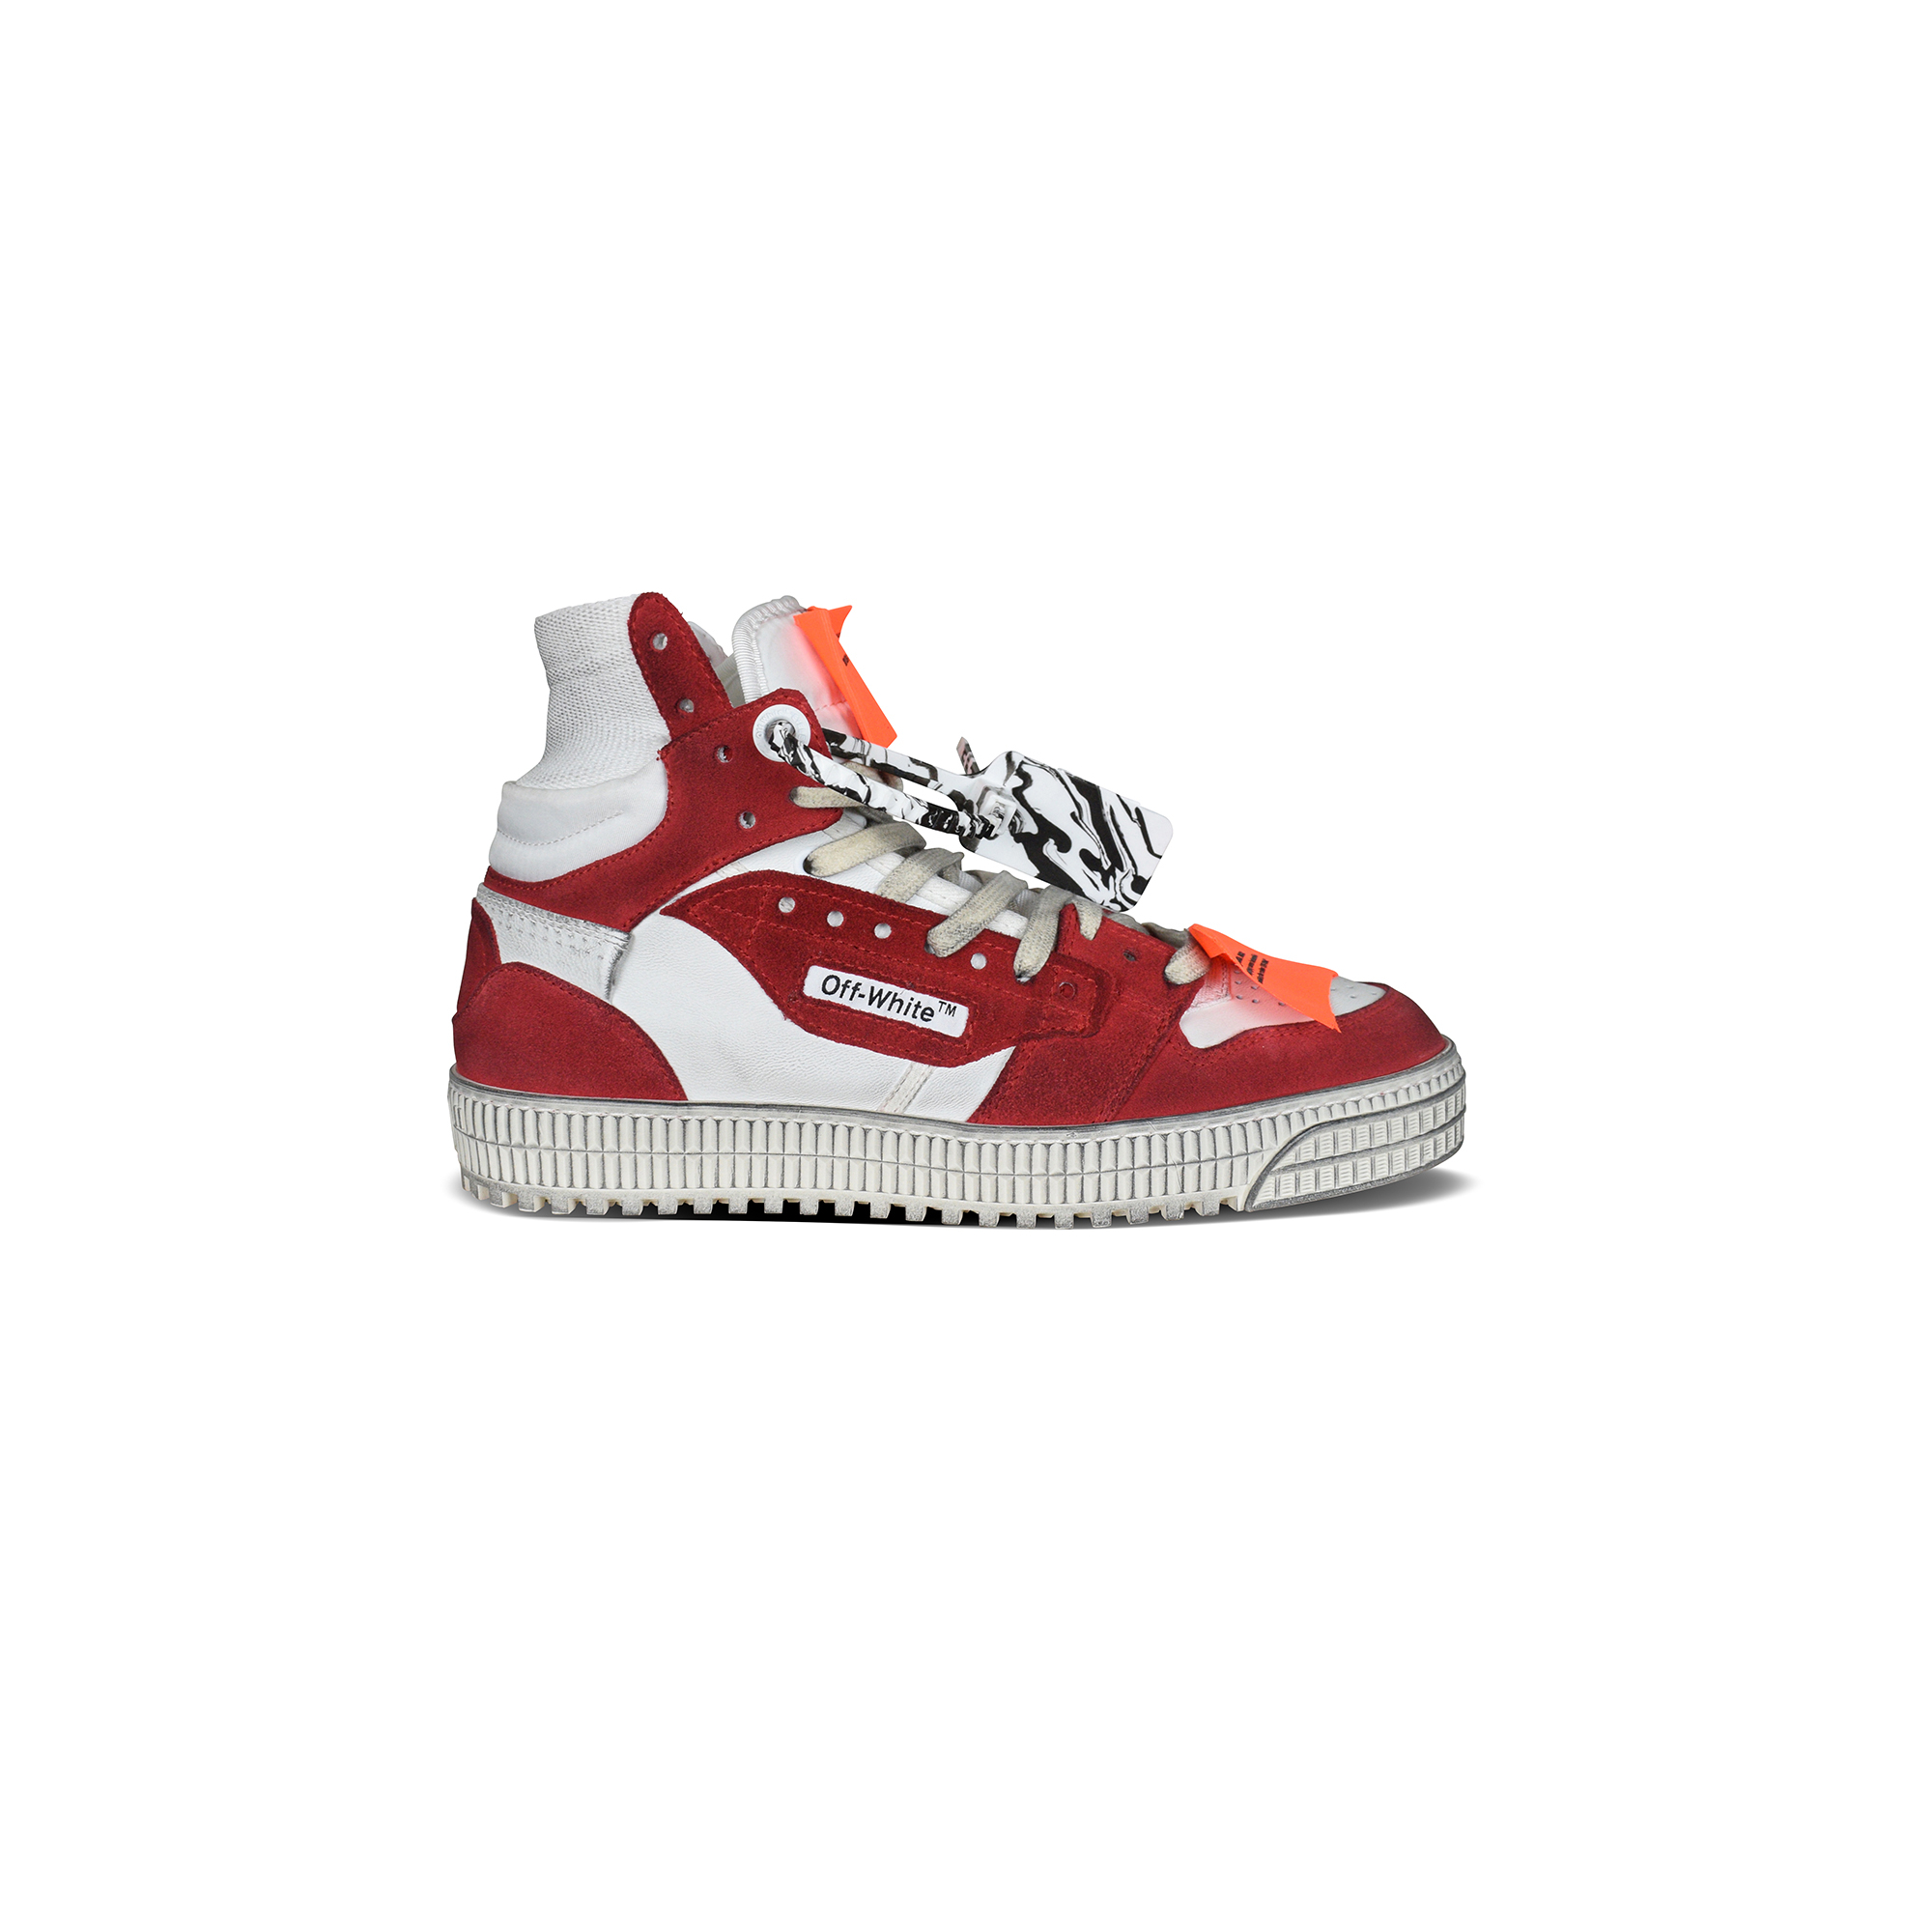 Off Court sneakers in red and white leather.